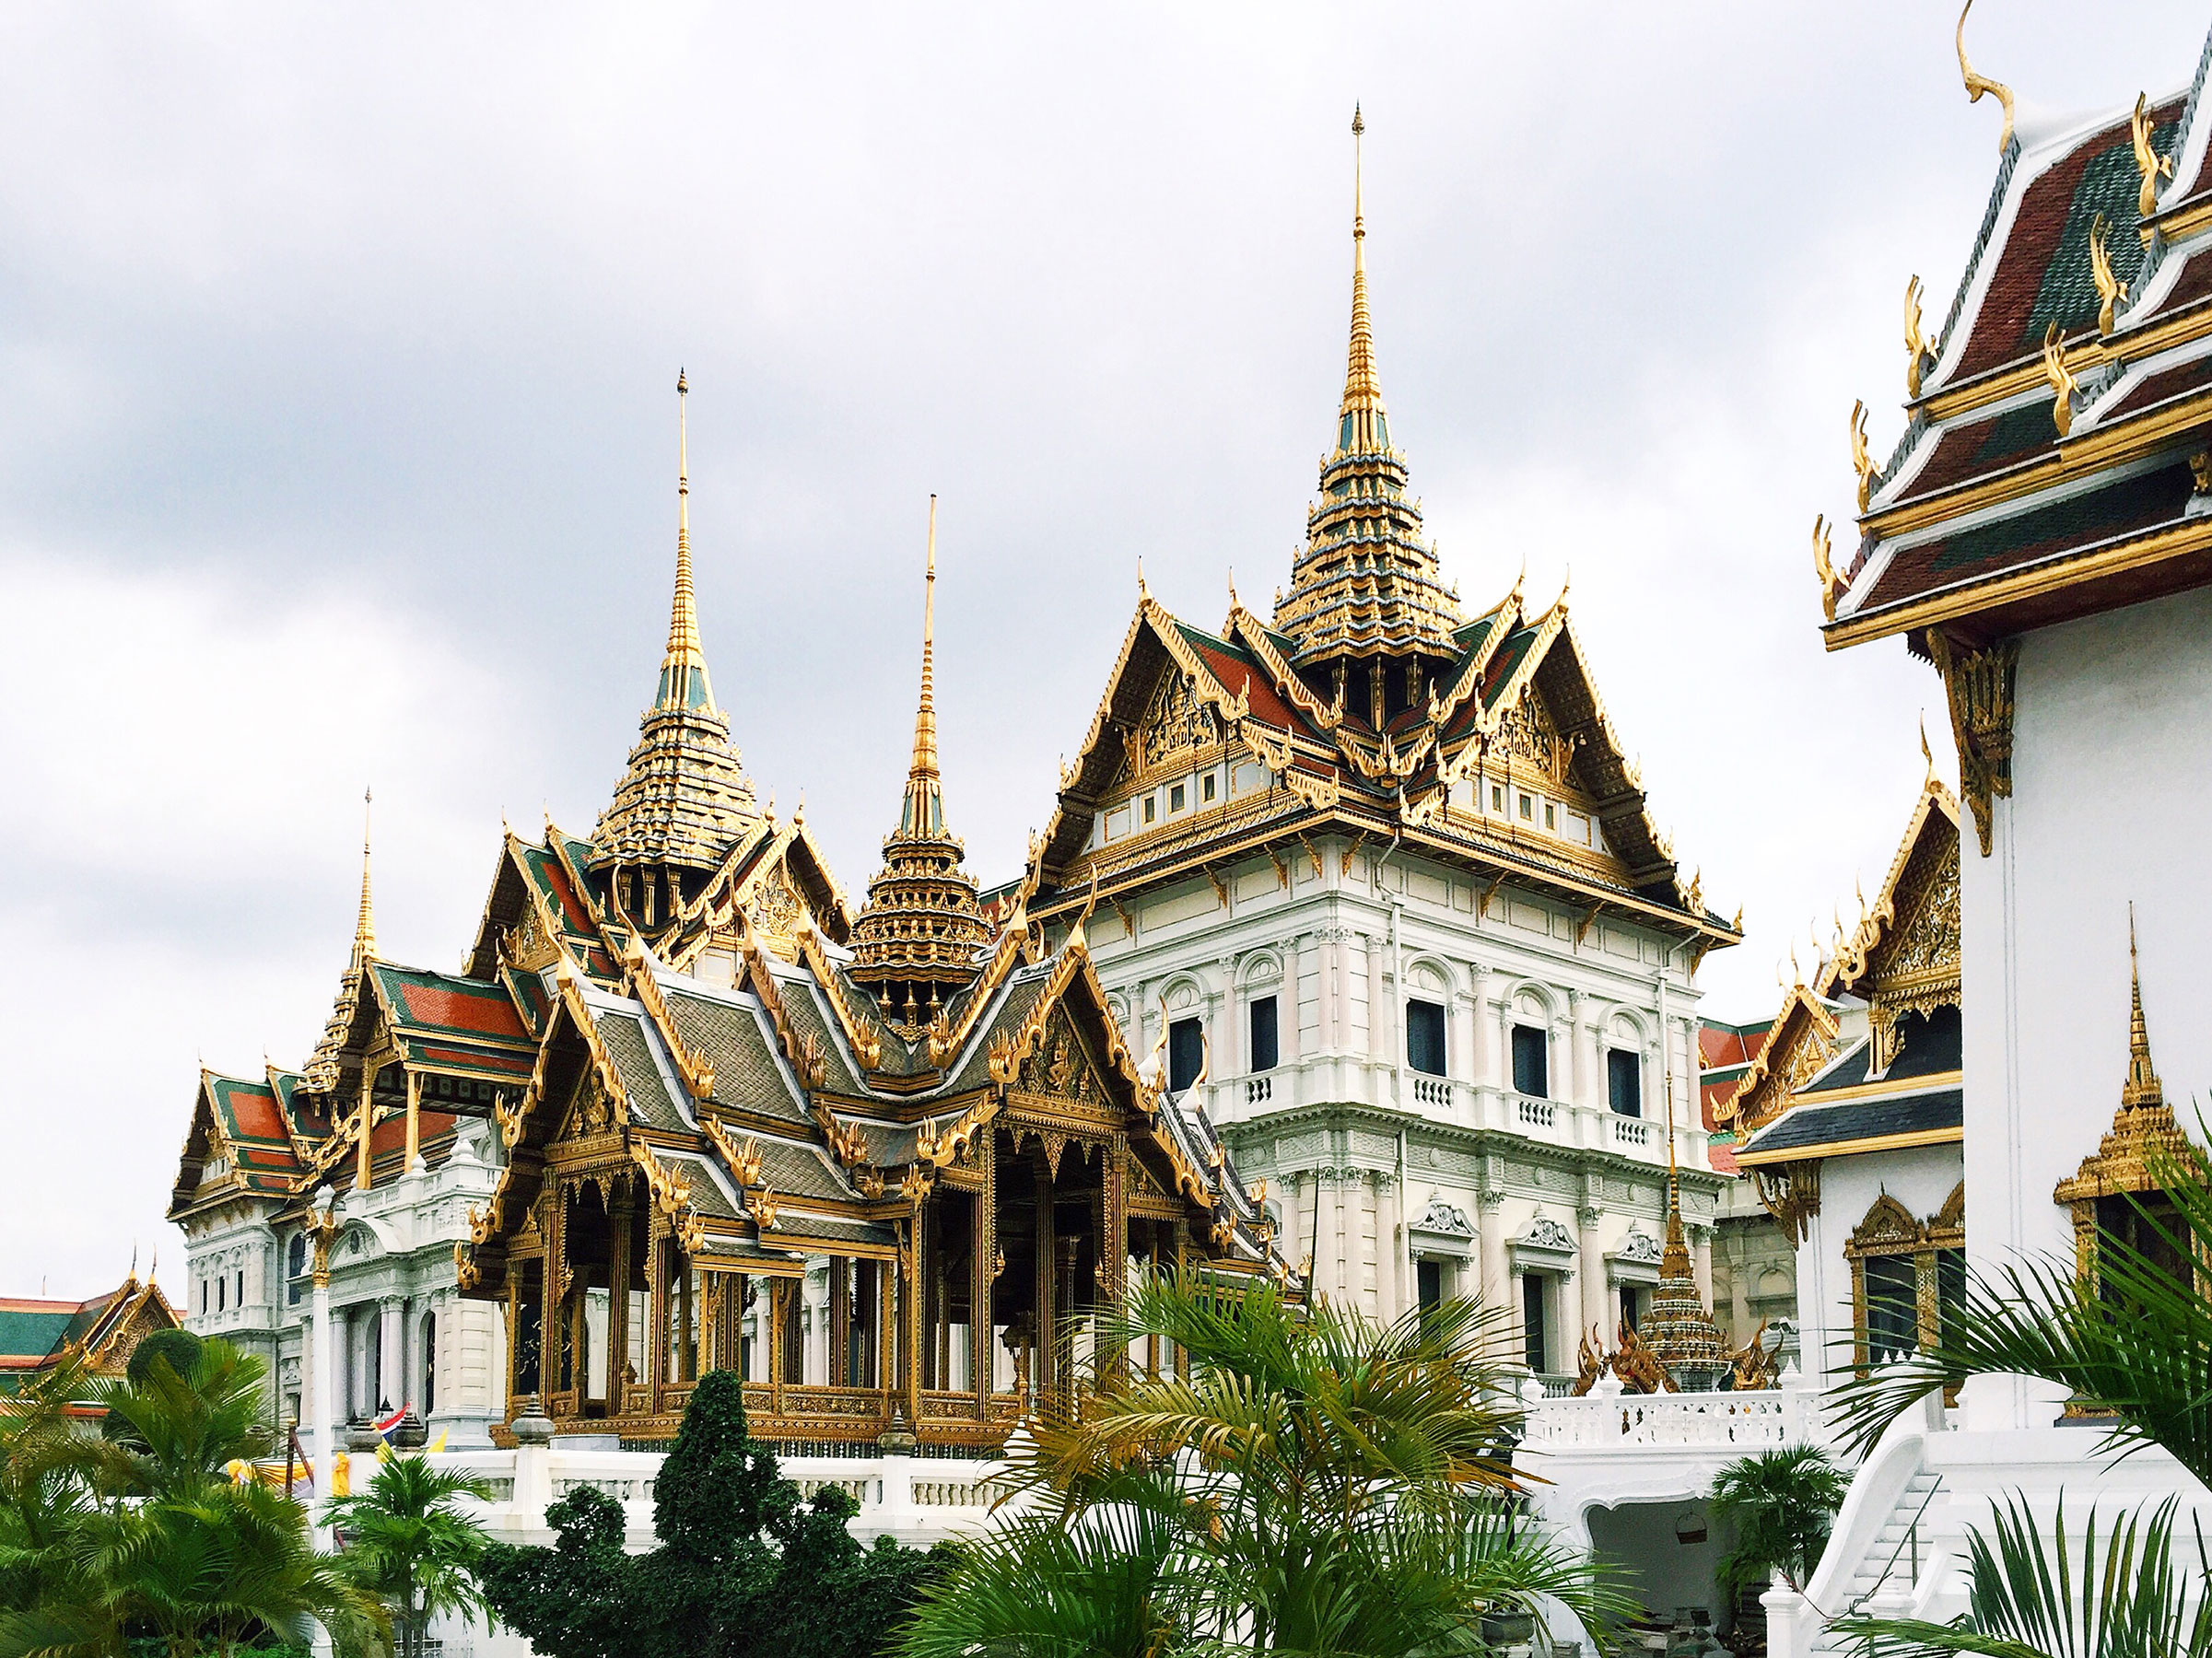 The Grand Palace is a stunning masterpiece! Those rooftops are just gorgeous!